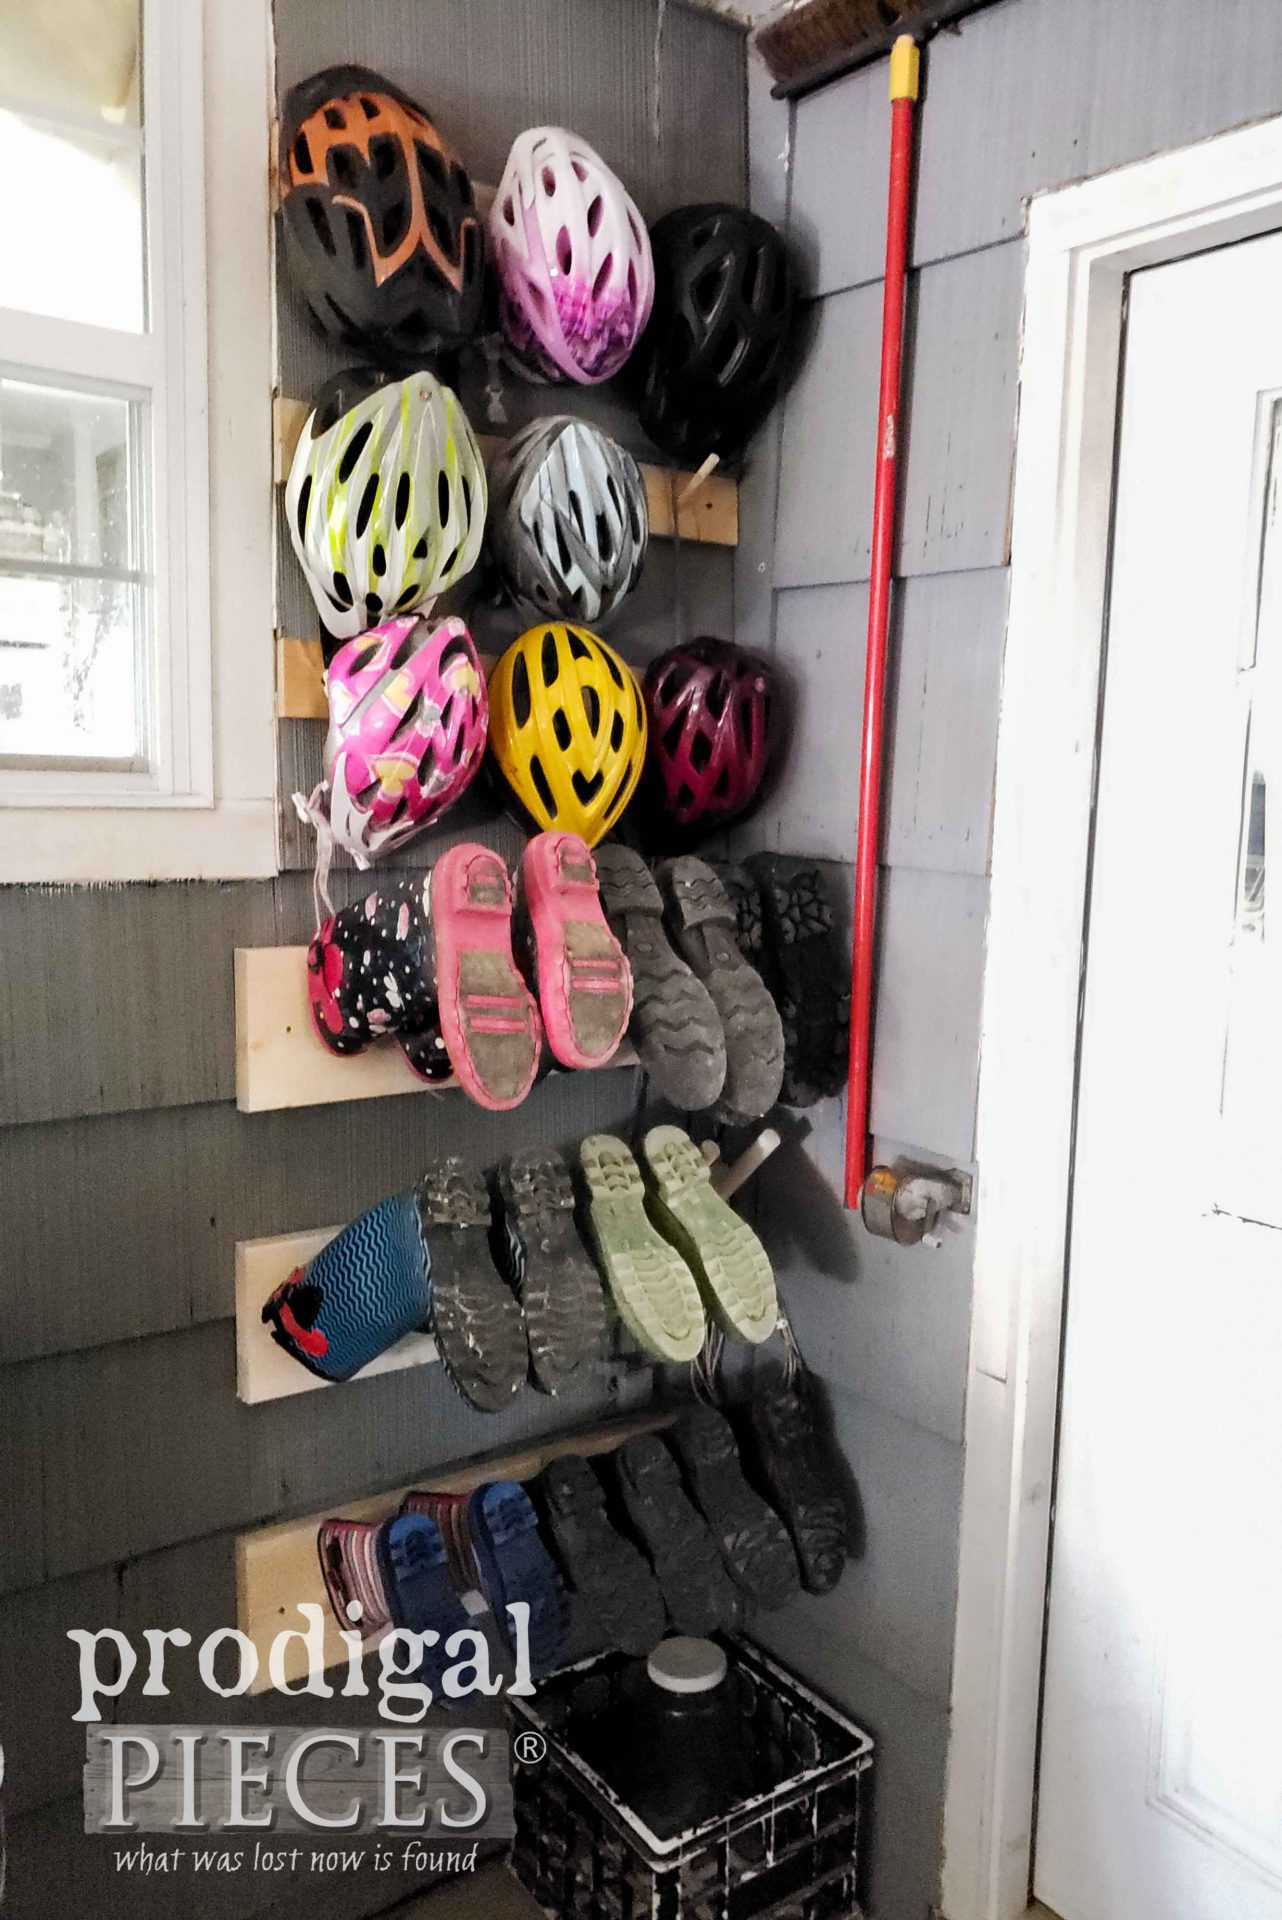 Build this DIY Boot Rack with Bike Helmet Storage too | Head to Prodigal Pieces | prodigalpieces.com #prodigalpieces #diy #home #storage #homedecor #storage #woodworking